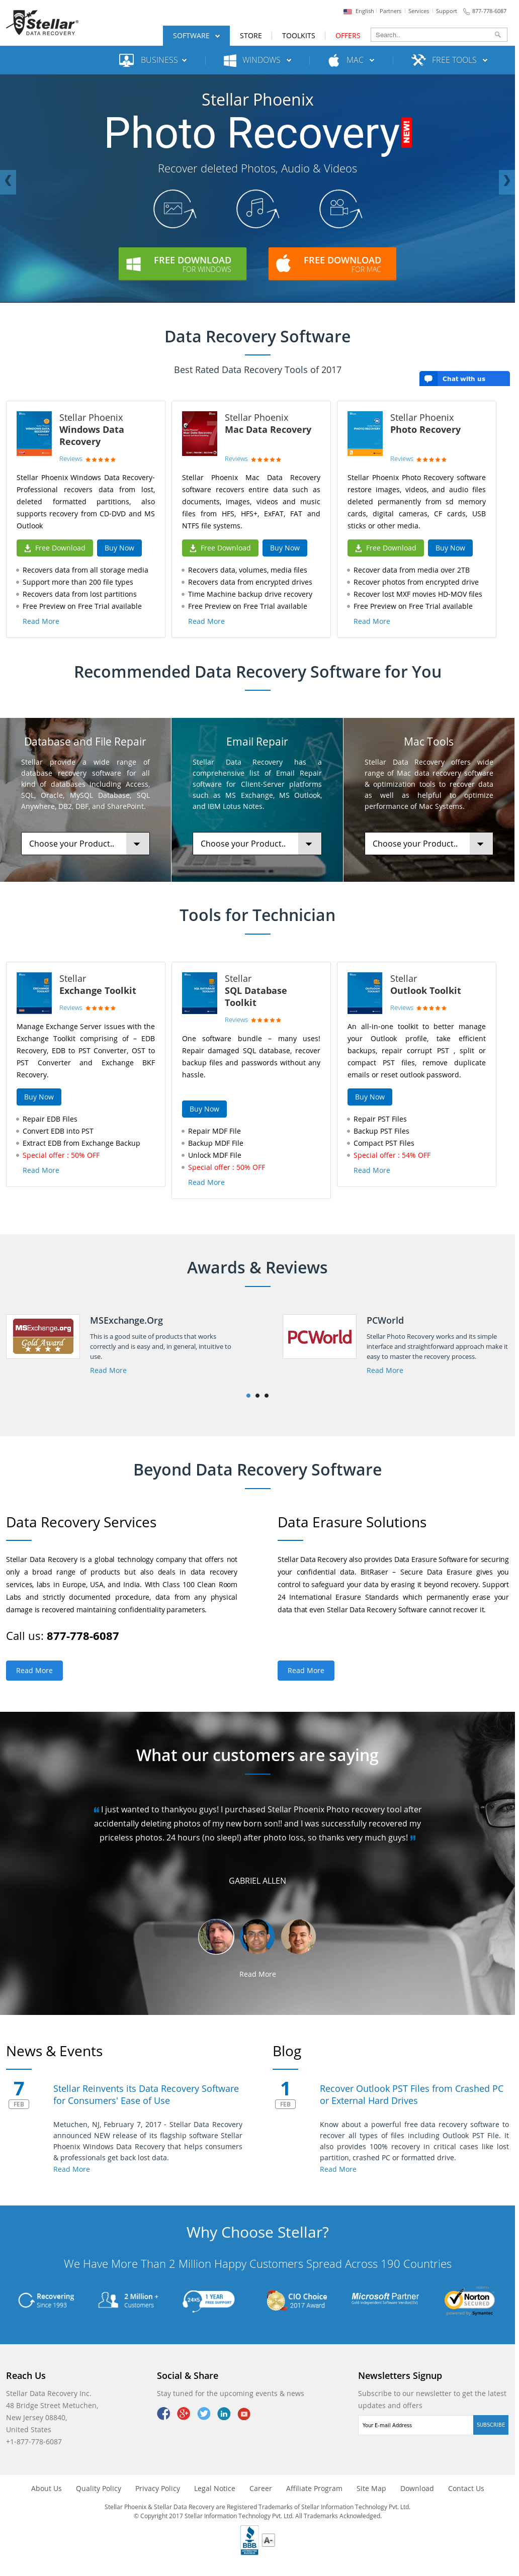 Stellar Data Recovery Competitors, Revenue and Employees